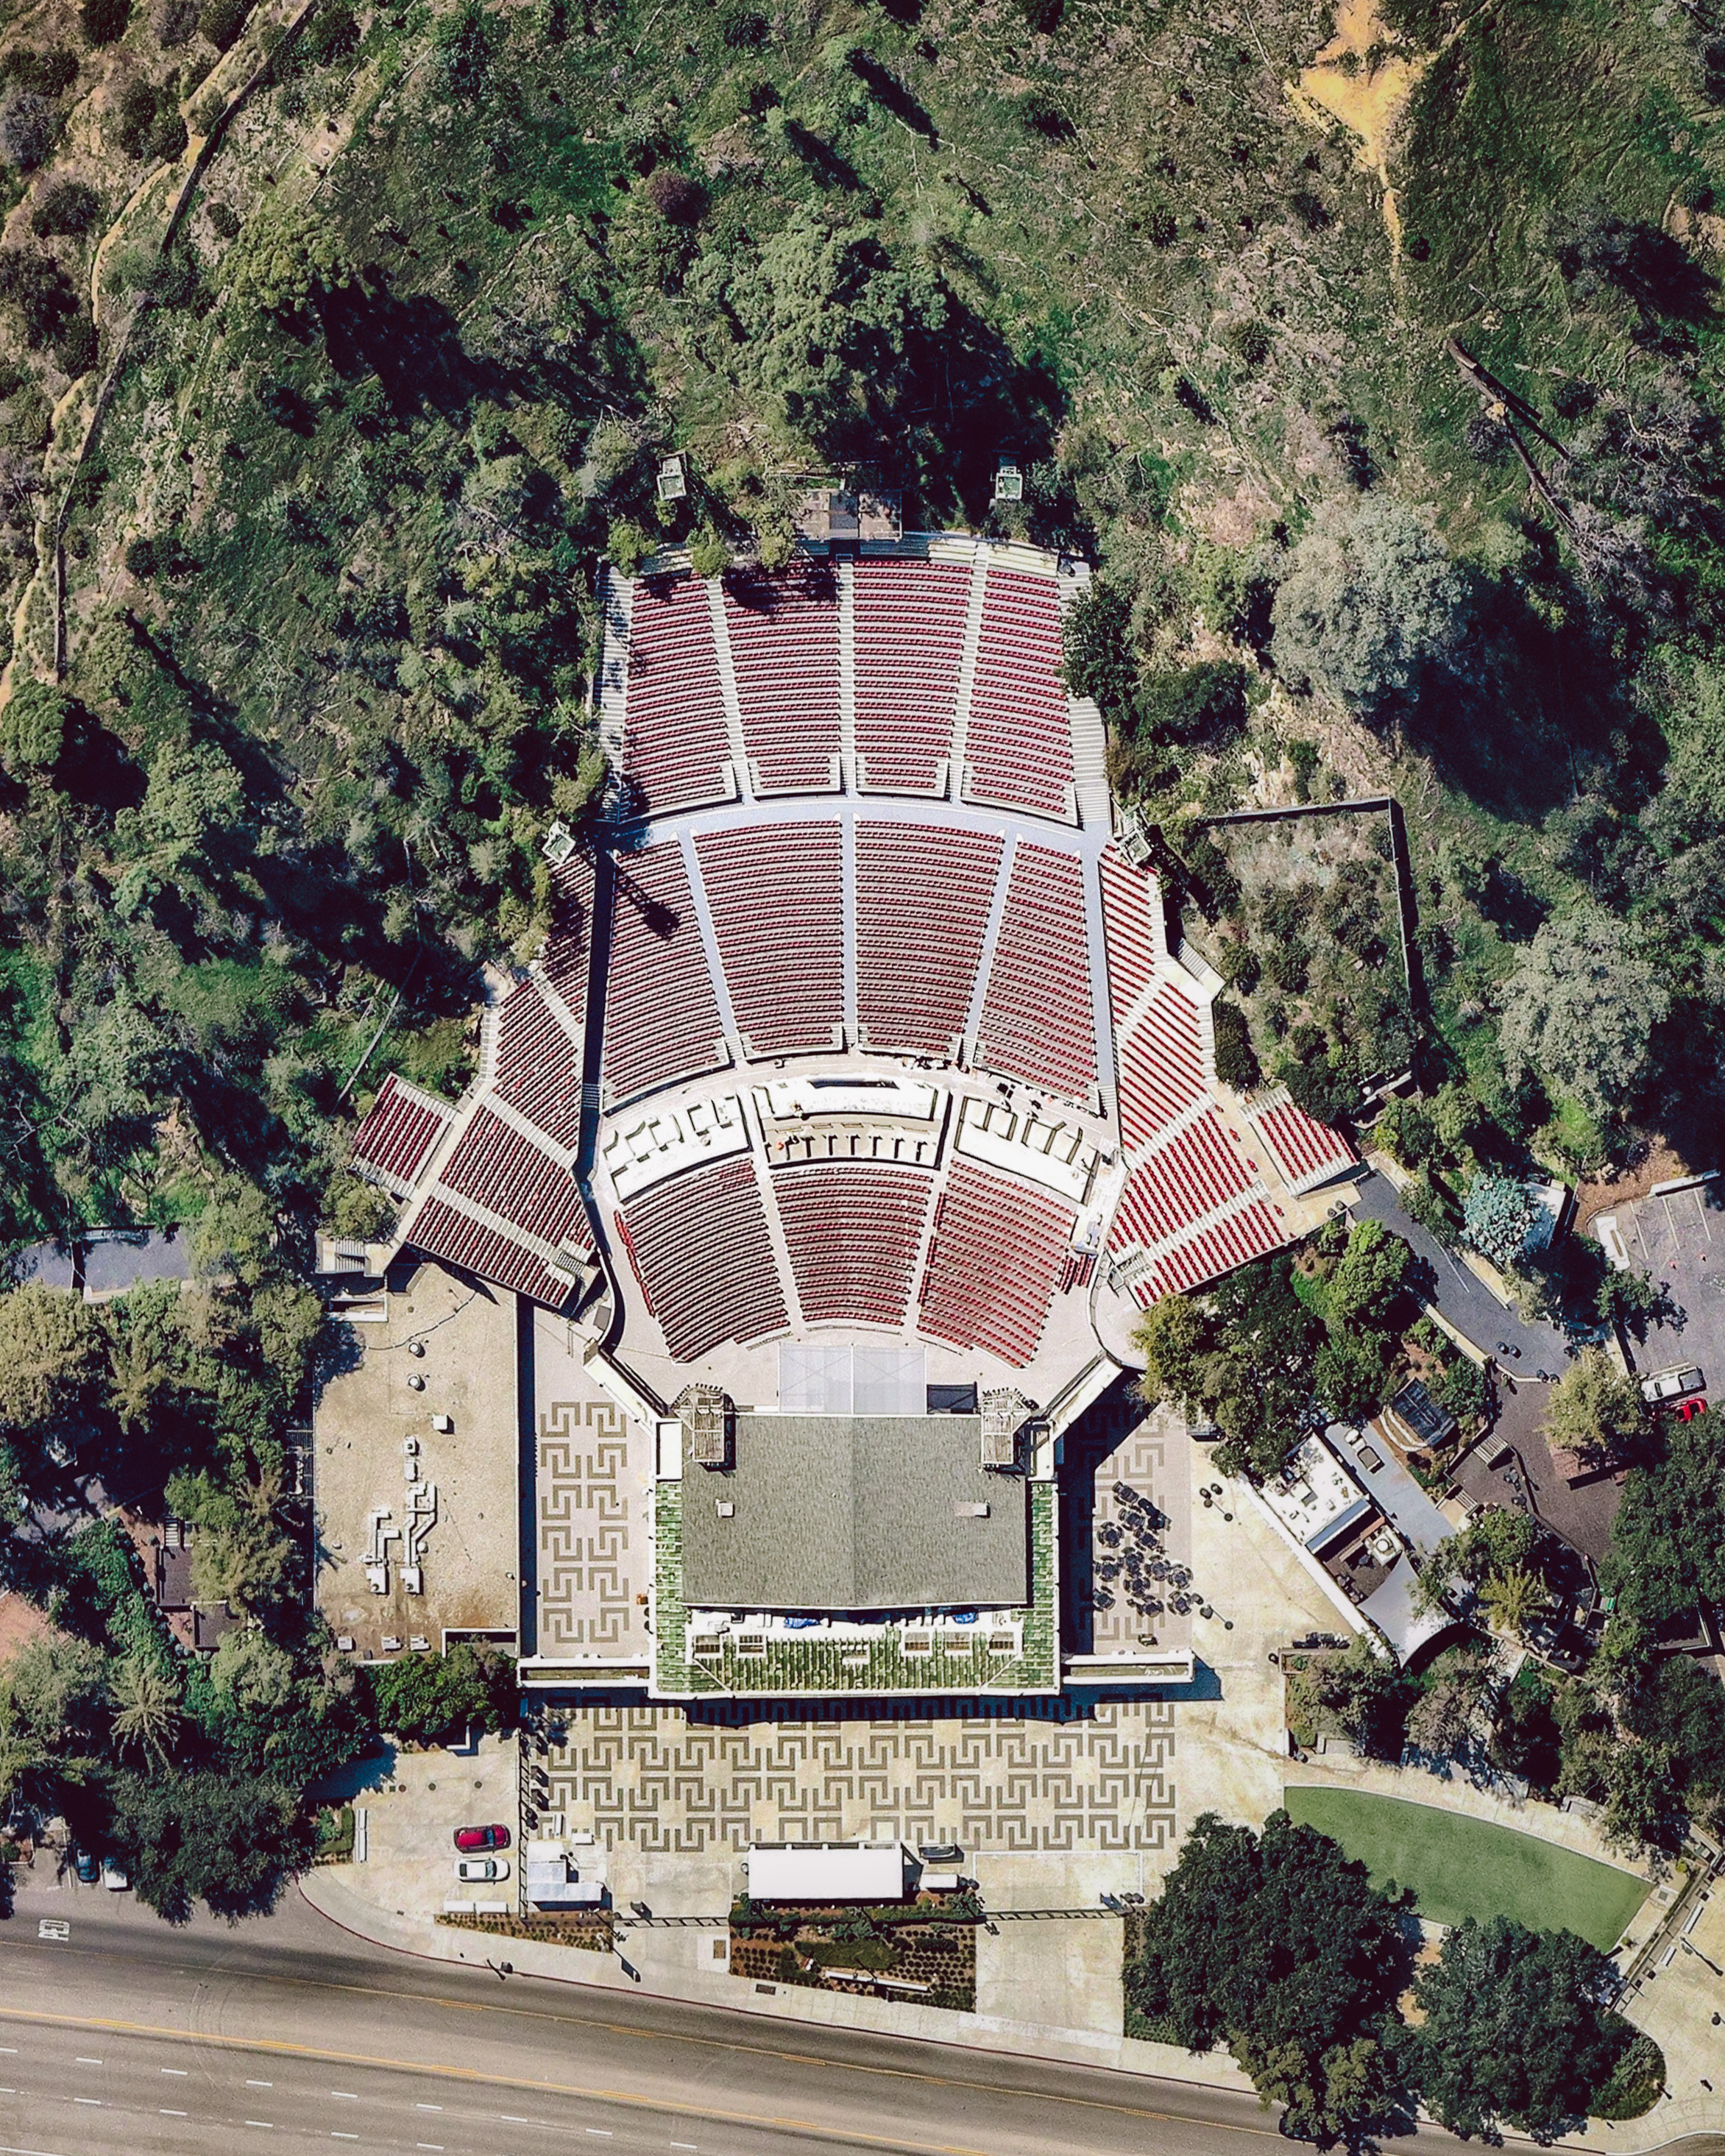 Greek Theatre is a 5,870-seat music venue in Griffith Park, Los Angeles, California. The venue hosted its first show in June 1931, selling seats in the first two sections for a dollar a piece and giving the remaining seats away for free. Since then, it has featured some big names in music — including Elton John, Aretha Franklin, Frank Sinatra, Bruce Springsteen and Carlos Santana.  34.119702°, -118.296065°  Source imagery: Nearmap